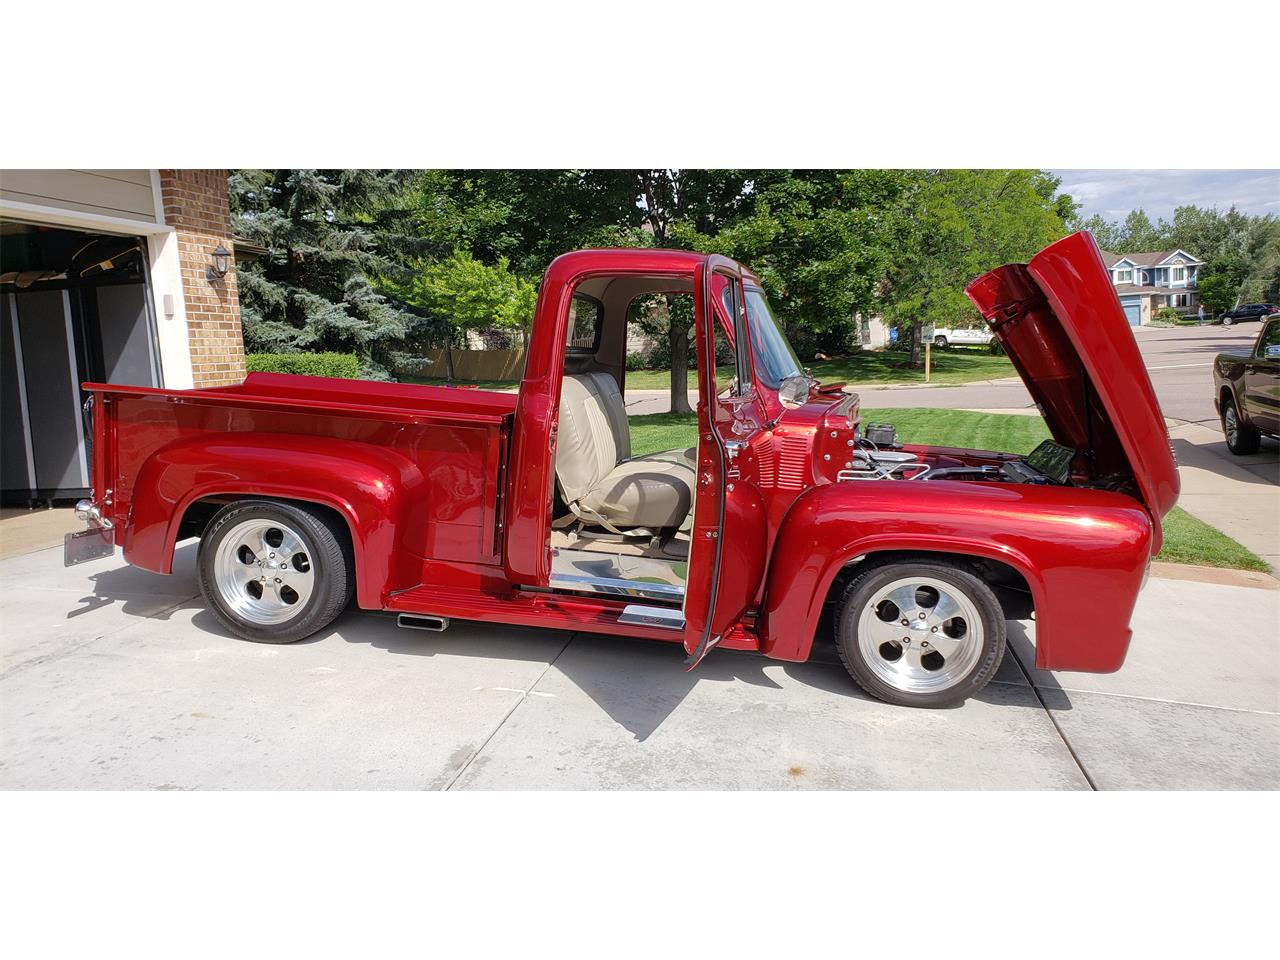 1953 Ford F100 Pickup Candy Apple Red 11.jpg